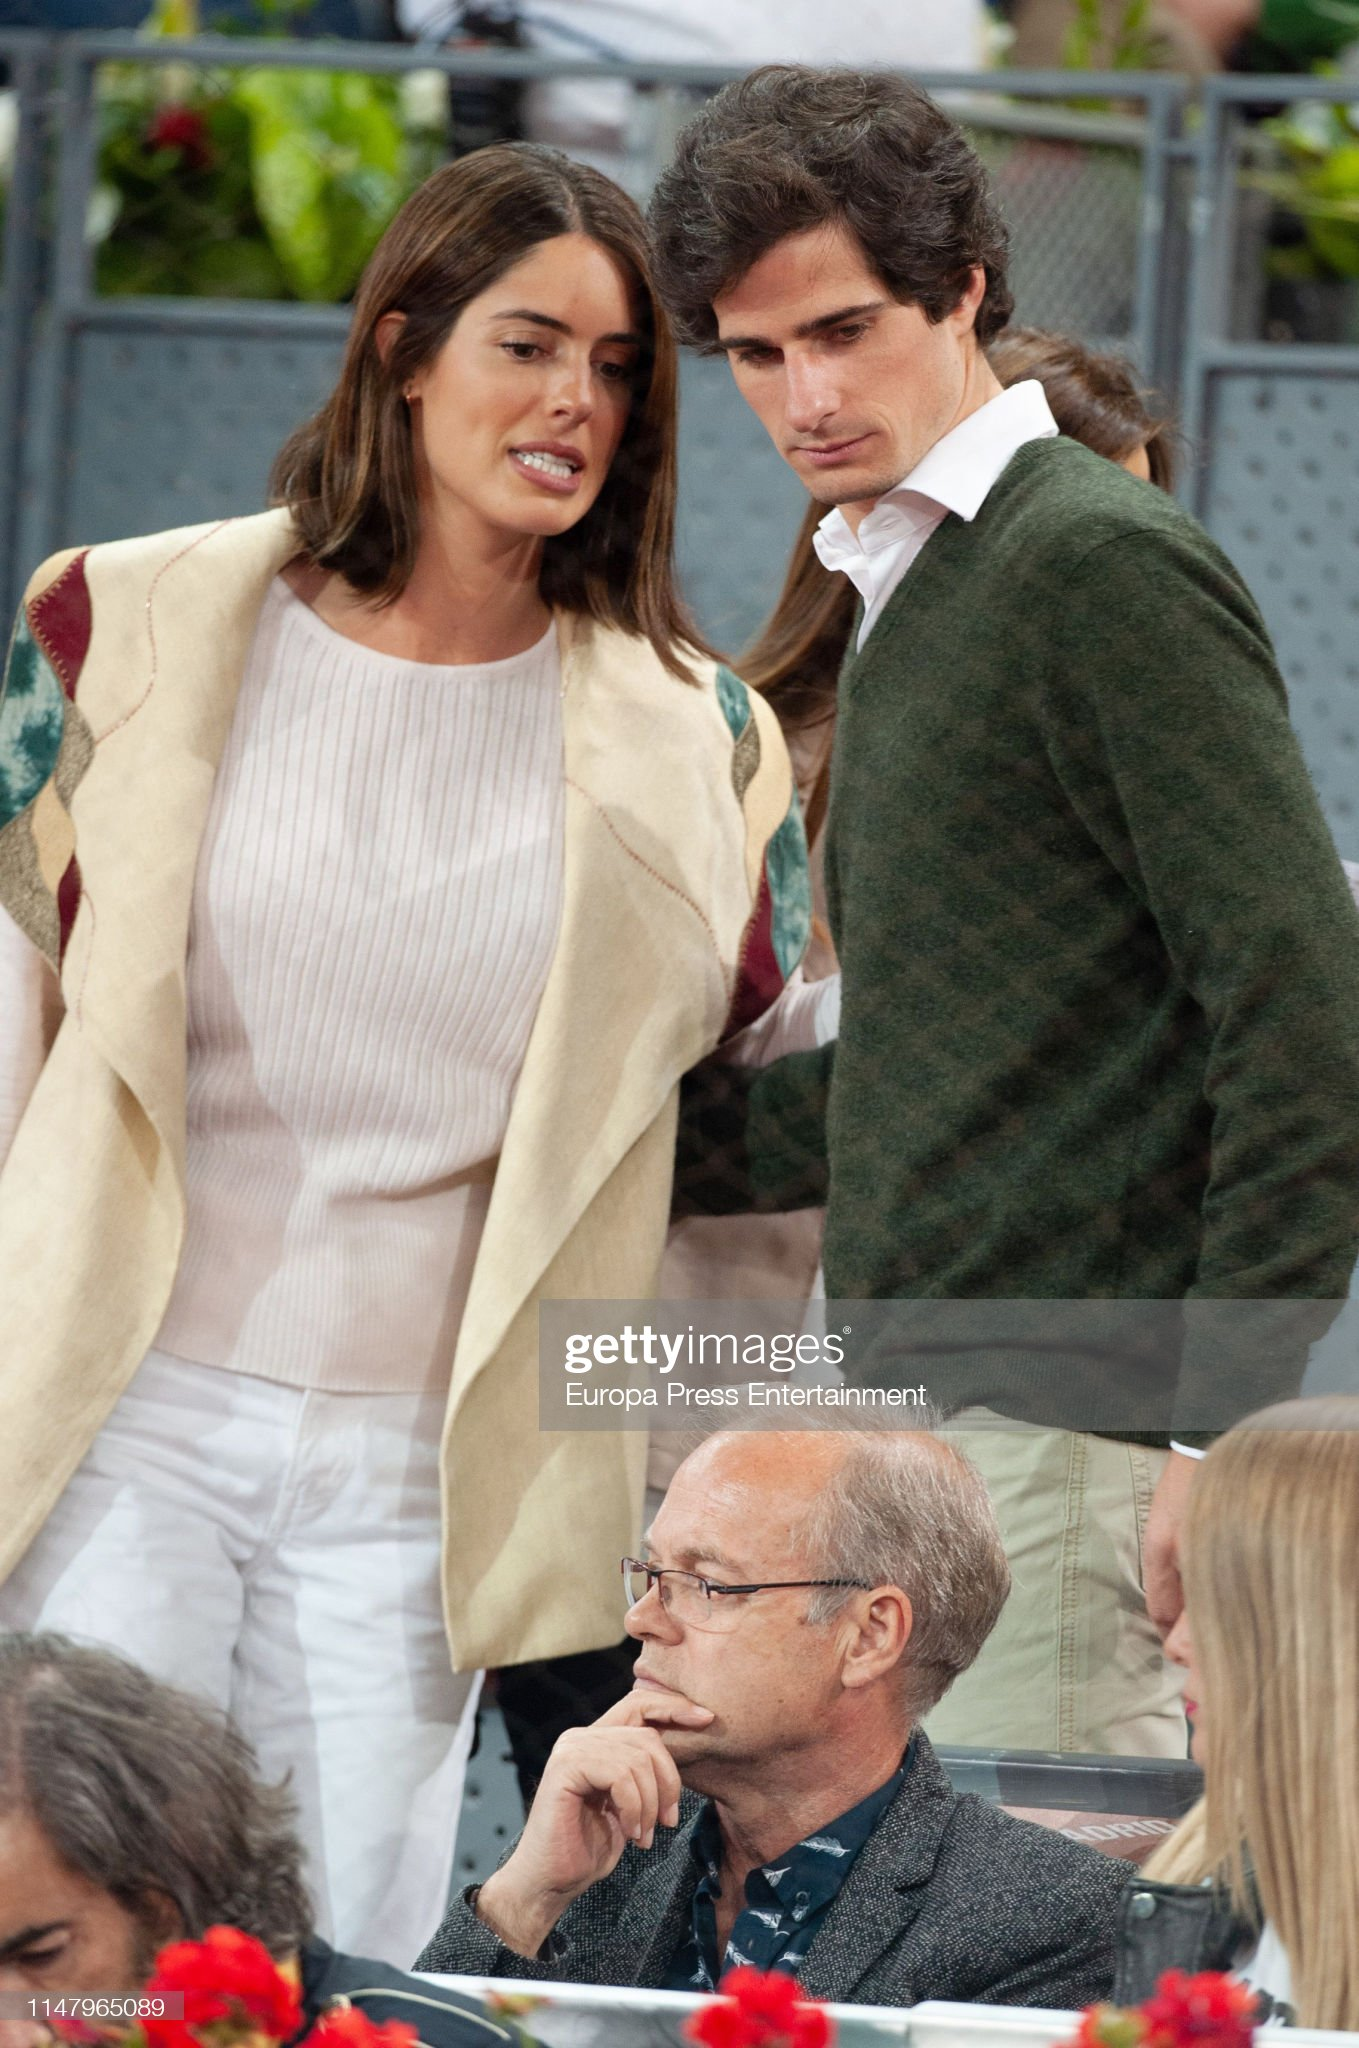 https://media.gettyimages.com/photos/fernando-martinez-de-irujo-and-sofia-palazuelo-attend-mutua-madrid-picture-id1147965089?s=2048x2048